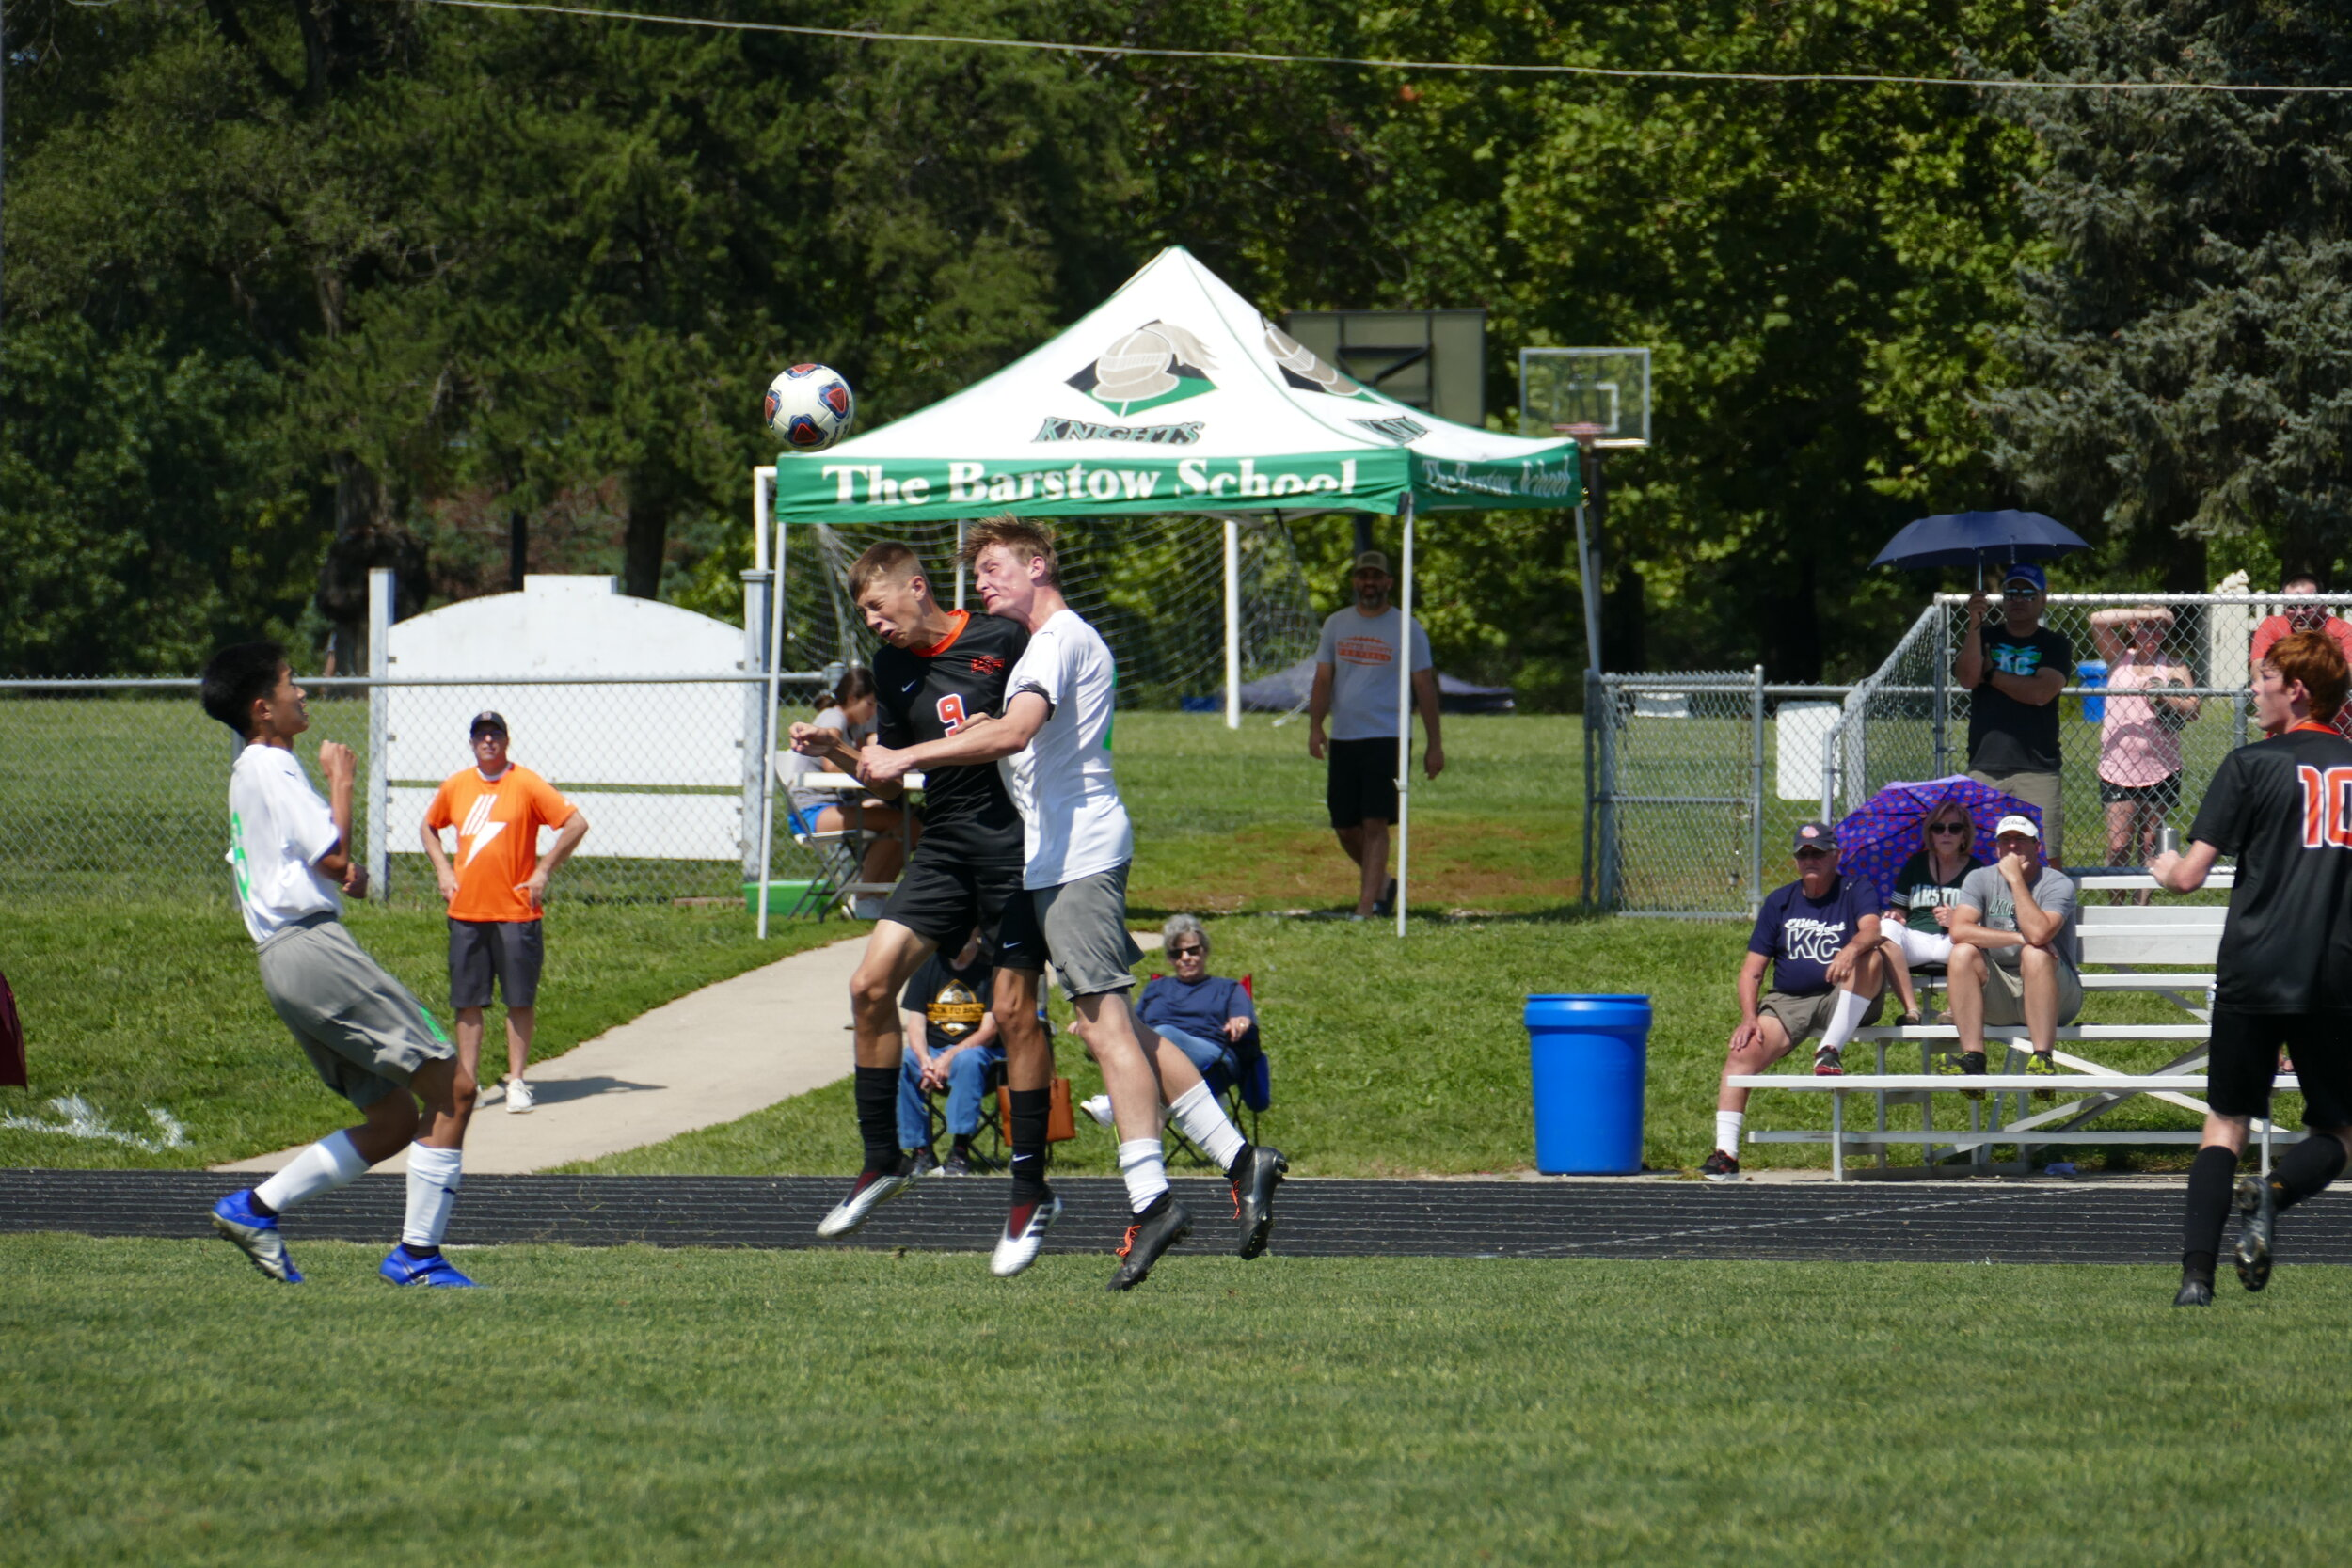 DEREK BIGUS/Special to the Citizen  Platte County's Joey Habel, left, goes up for a head along with a Barstow player during the championship game of the Barstow Tournament on Saturday, Sept. 7 in Kansas City. Platte County won 3-0.